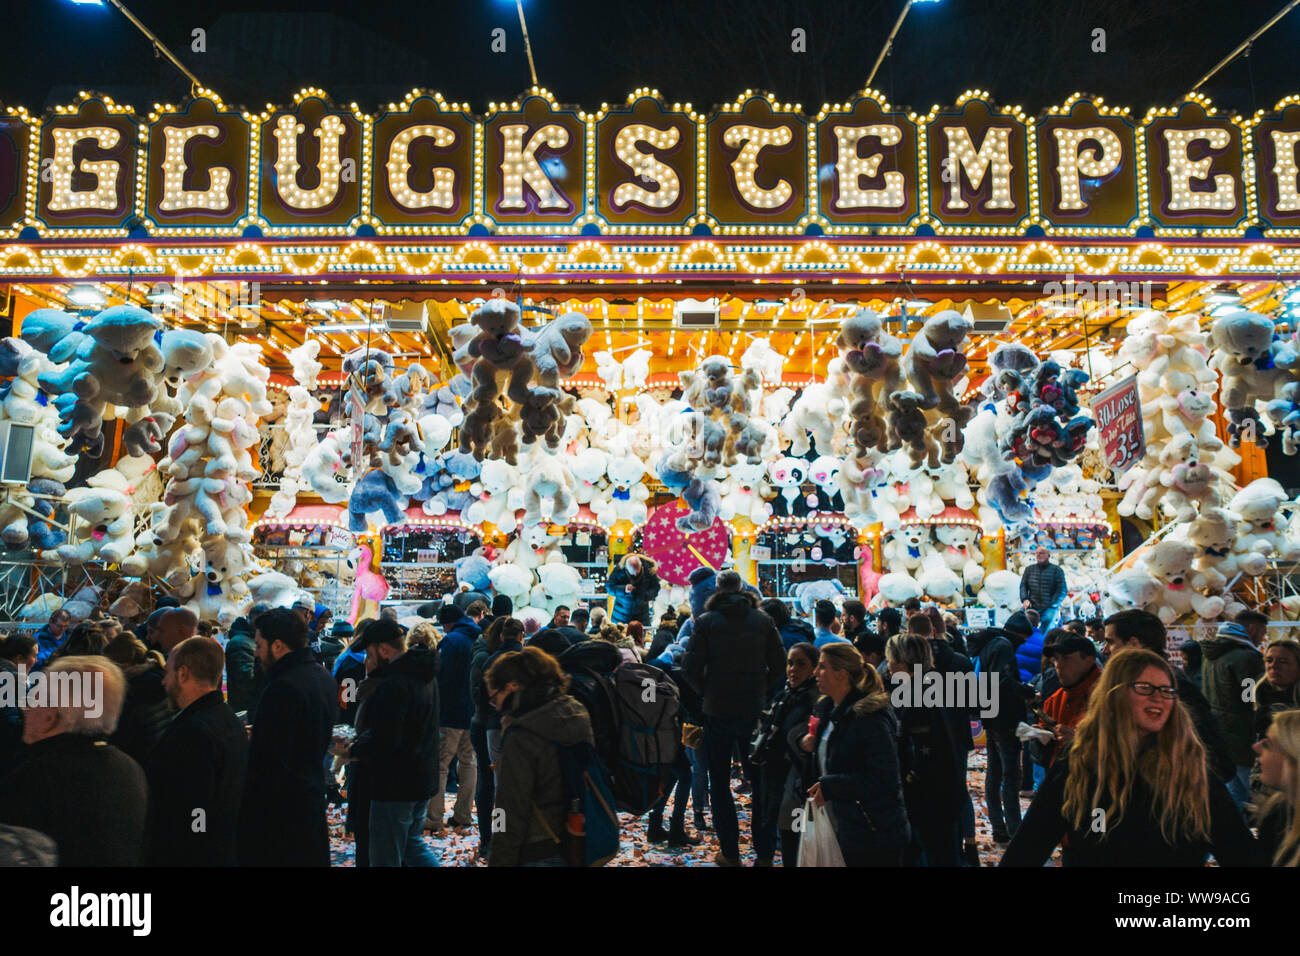 Dozens of stuffed toy animals hang above a raffle-like game while fair attendees walk past, one night at a fairground in Hamburg, Germany Stock Photo